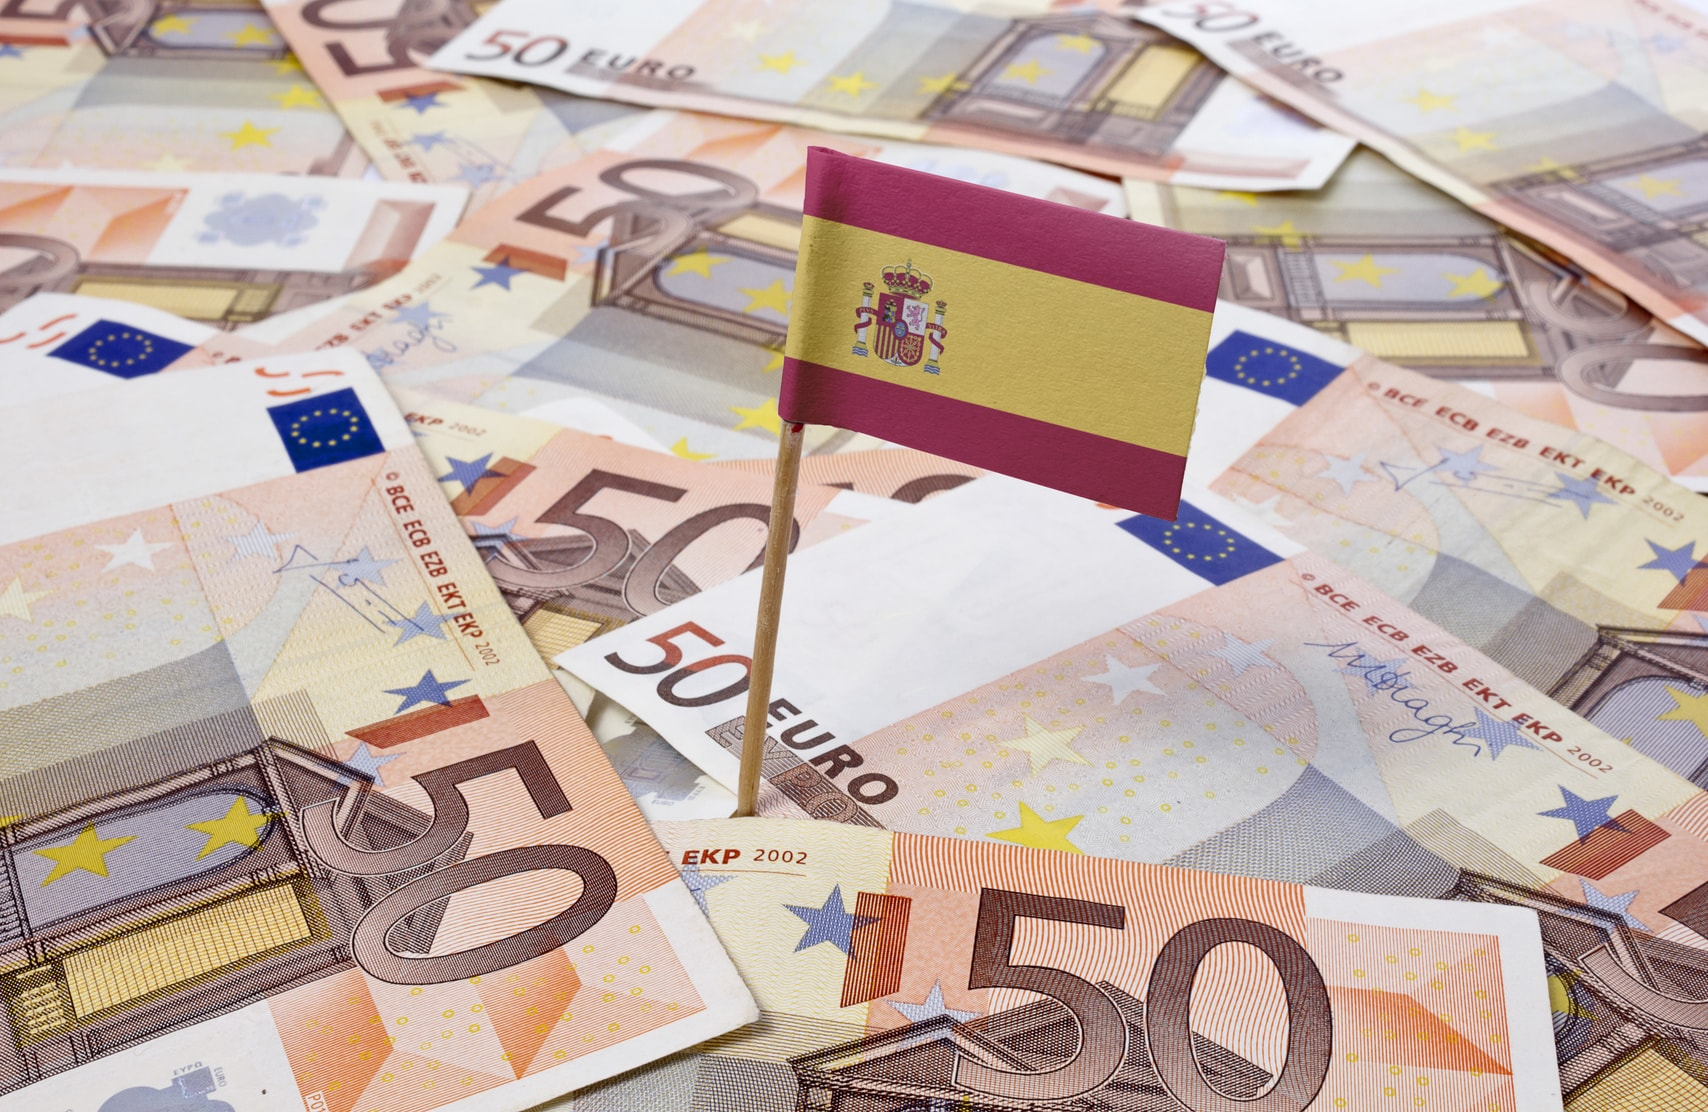 Spain's Treasury Department Identify 15,000 Spanish Taxpayers Who Own Cryptocurrencies